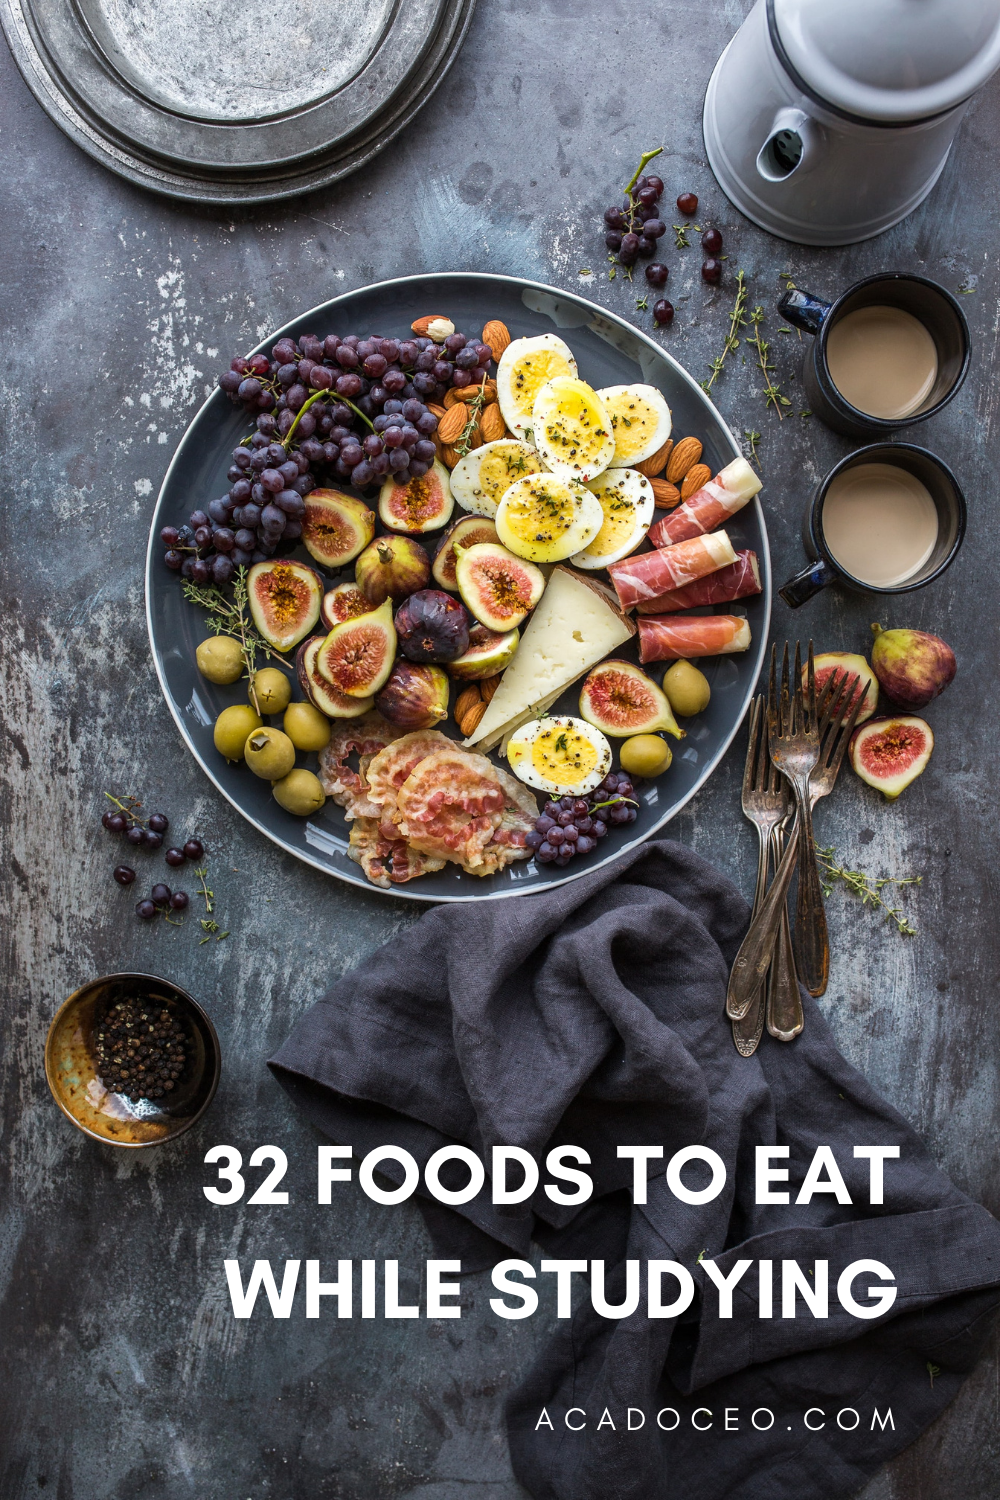 32 Foods to Eat While Studying